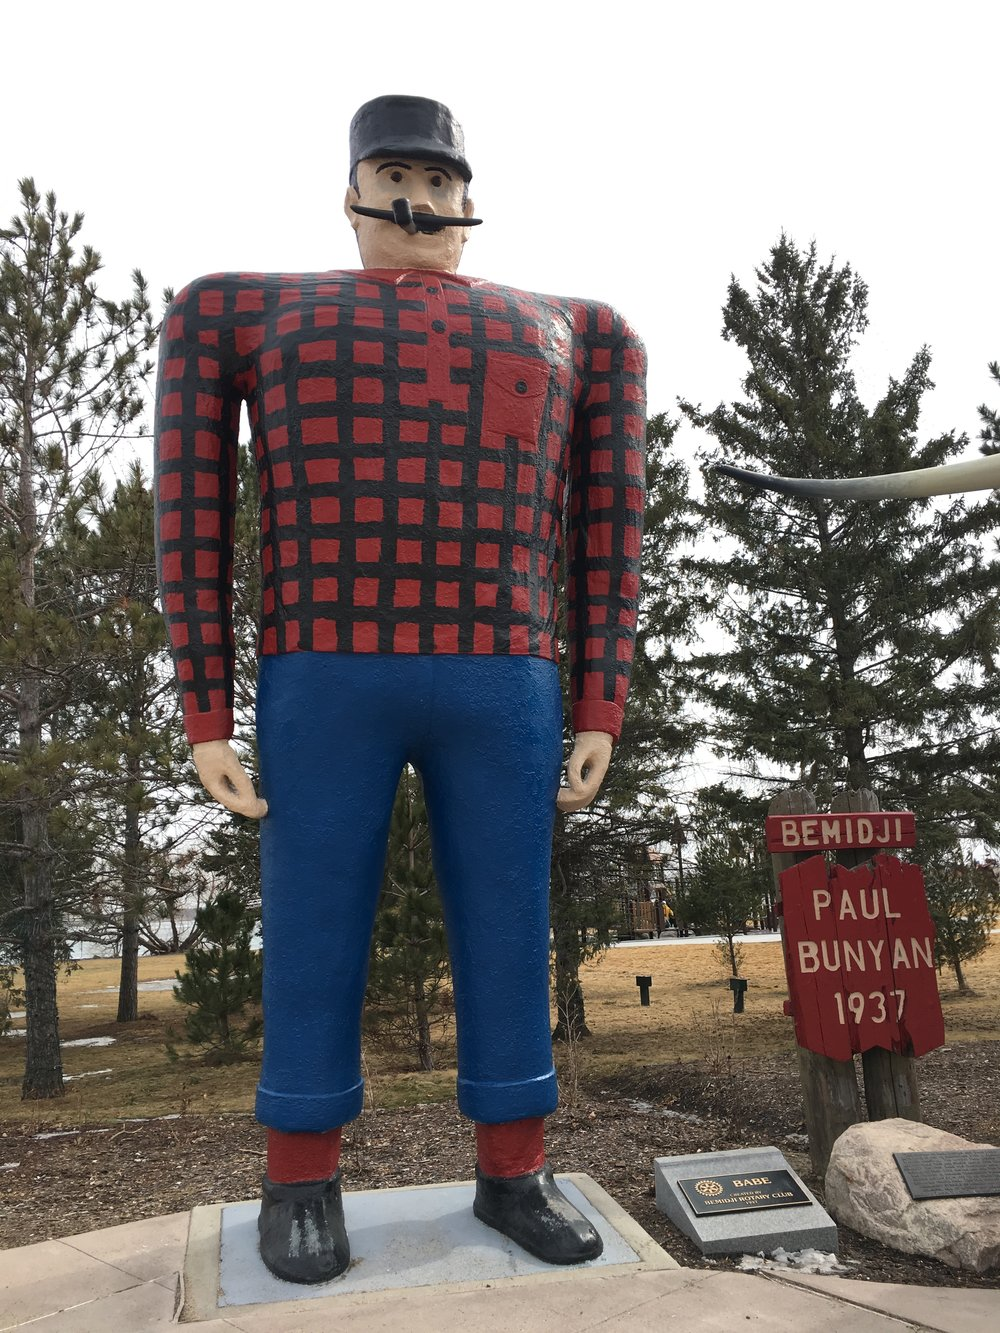 18' tall Paul Bunyan